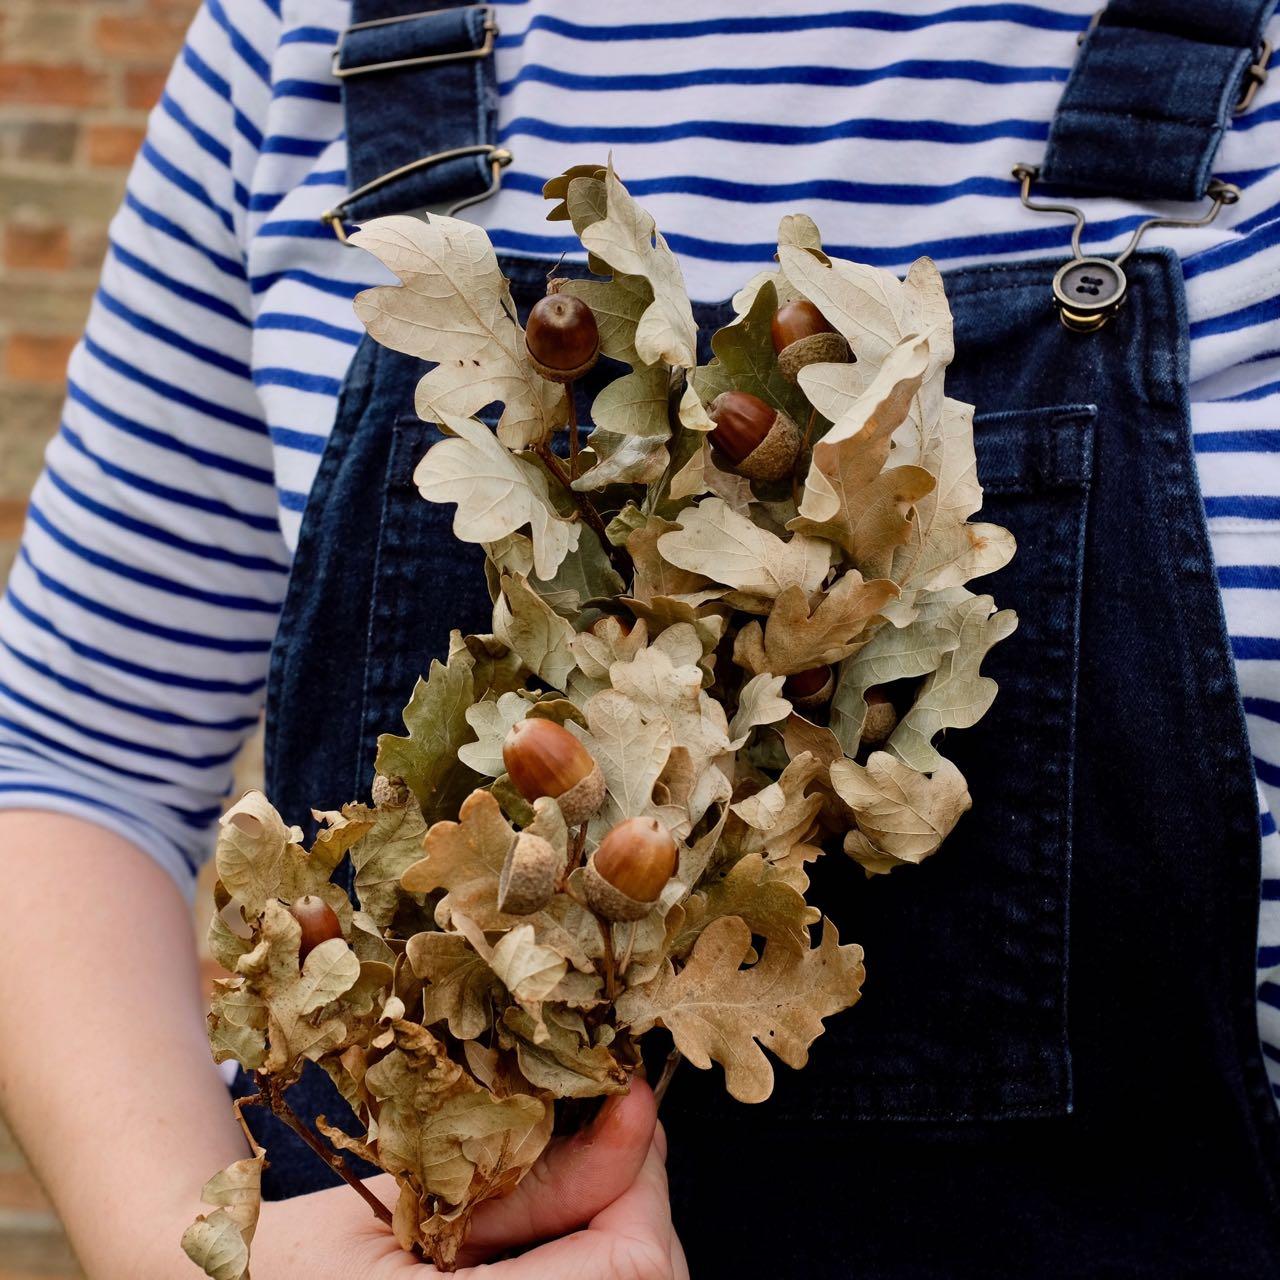 Breton and dungarees, with acorns